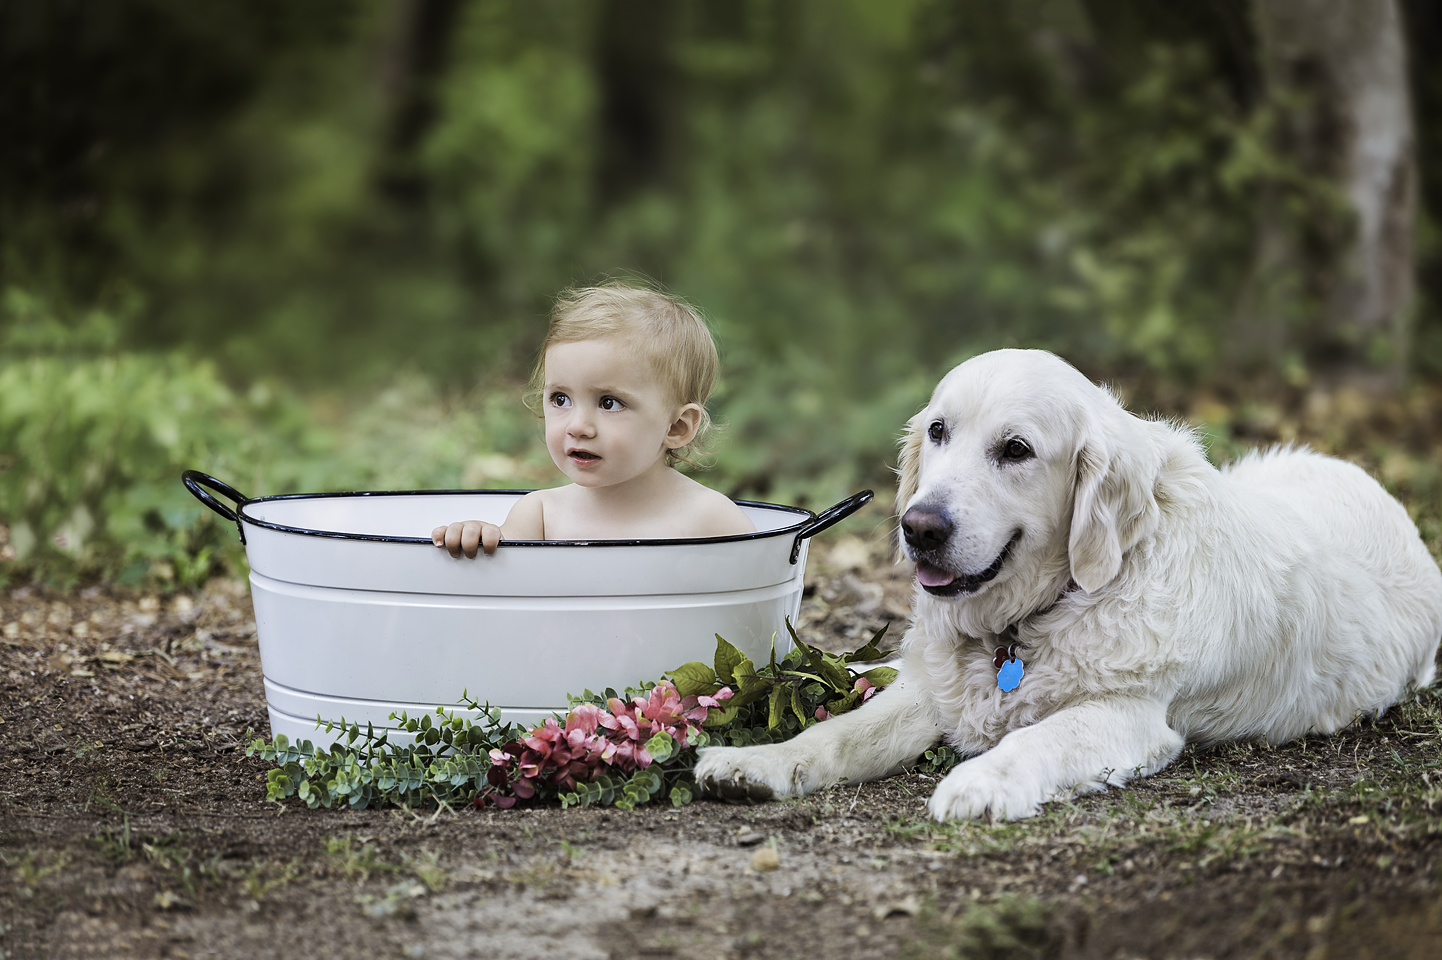 girl in tub with her dog